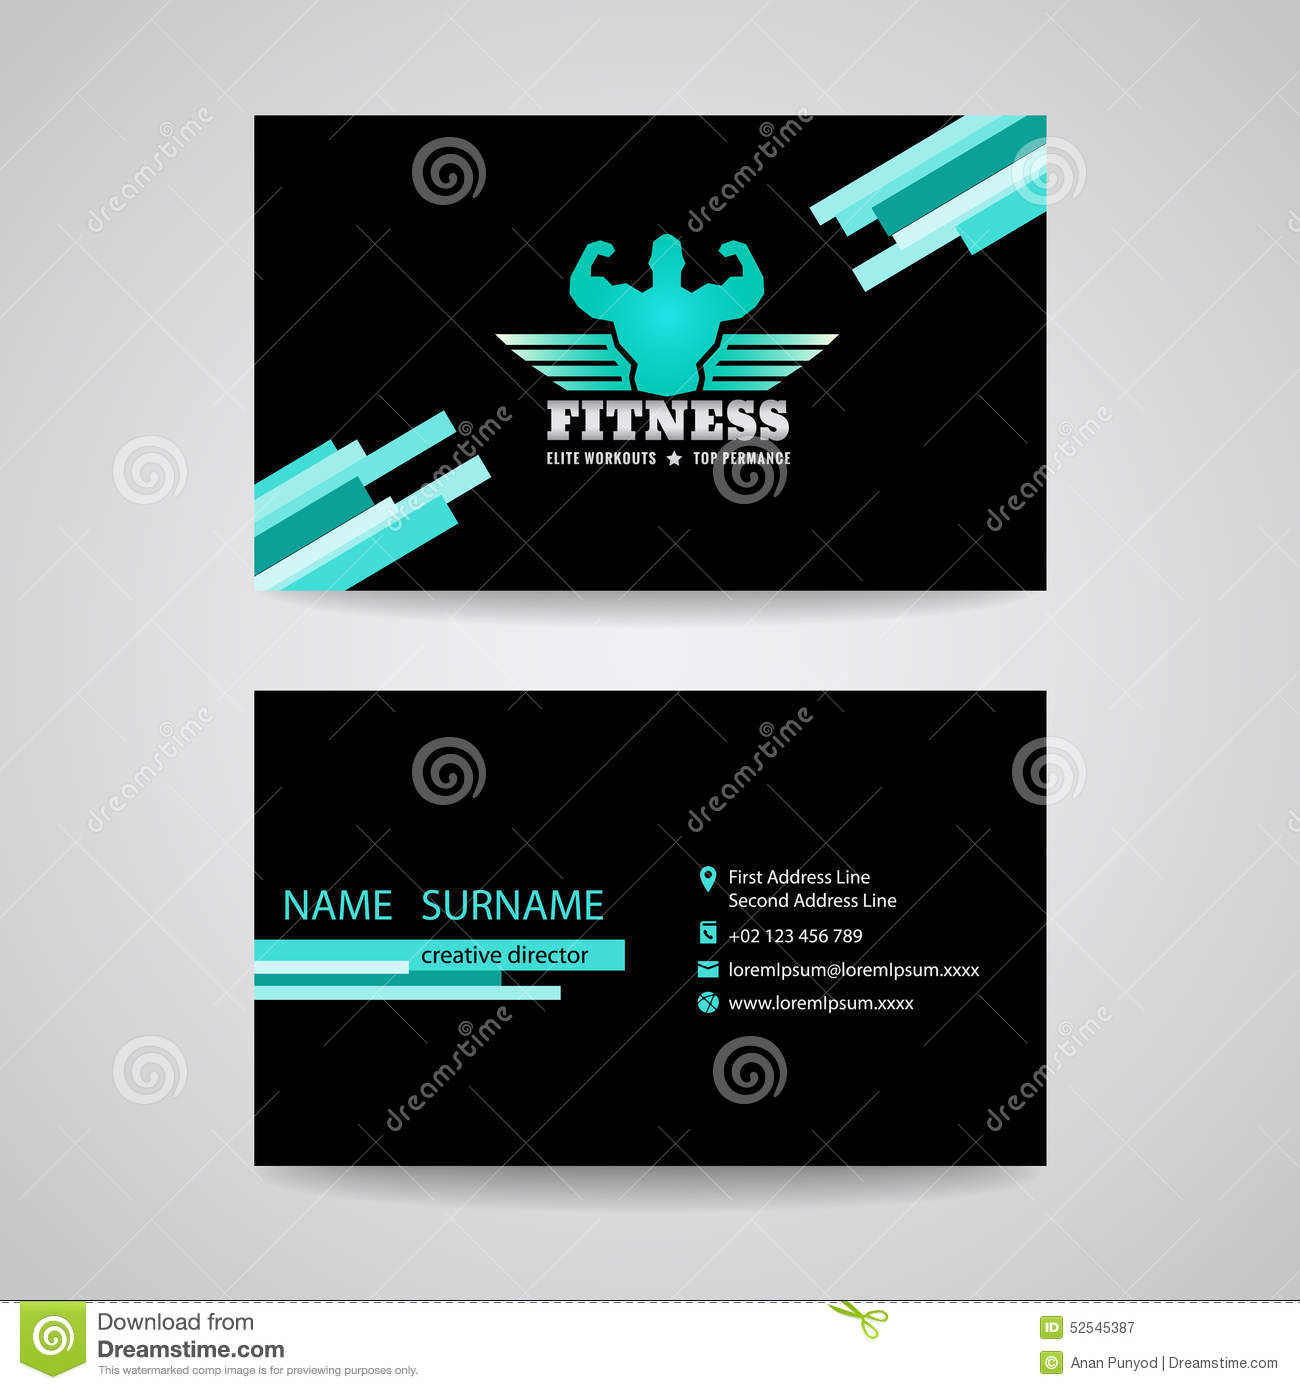 Anytime fitness business cards image collections free business cards anytime fitness business cards choice image free business cards fitness business card template choice image templates magicingreecefo Choice Image